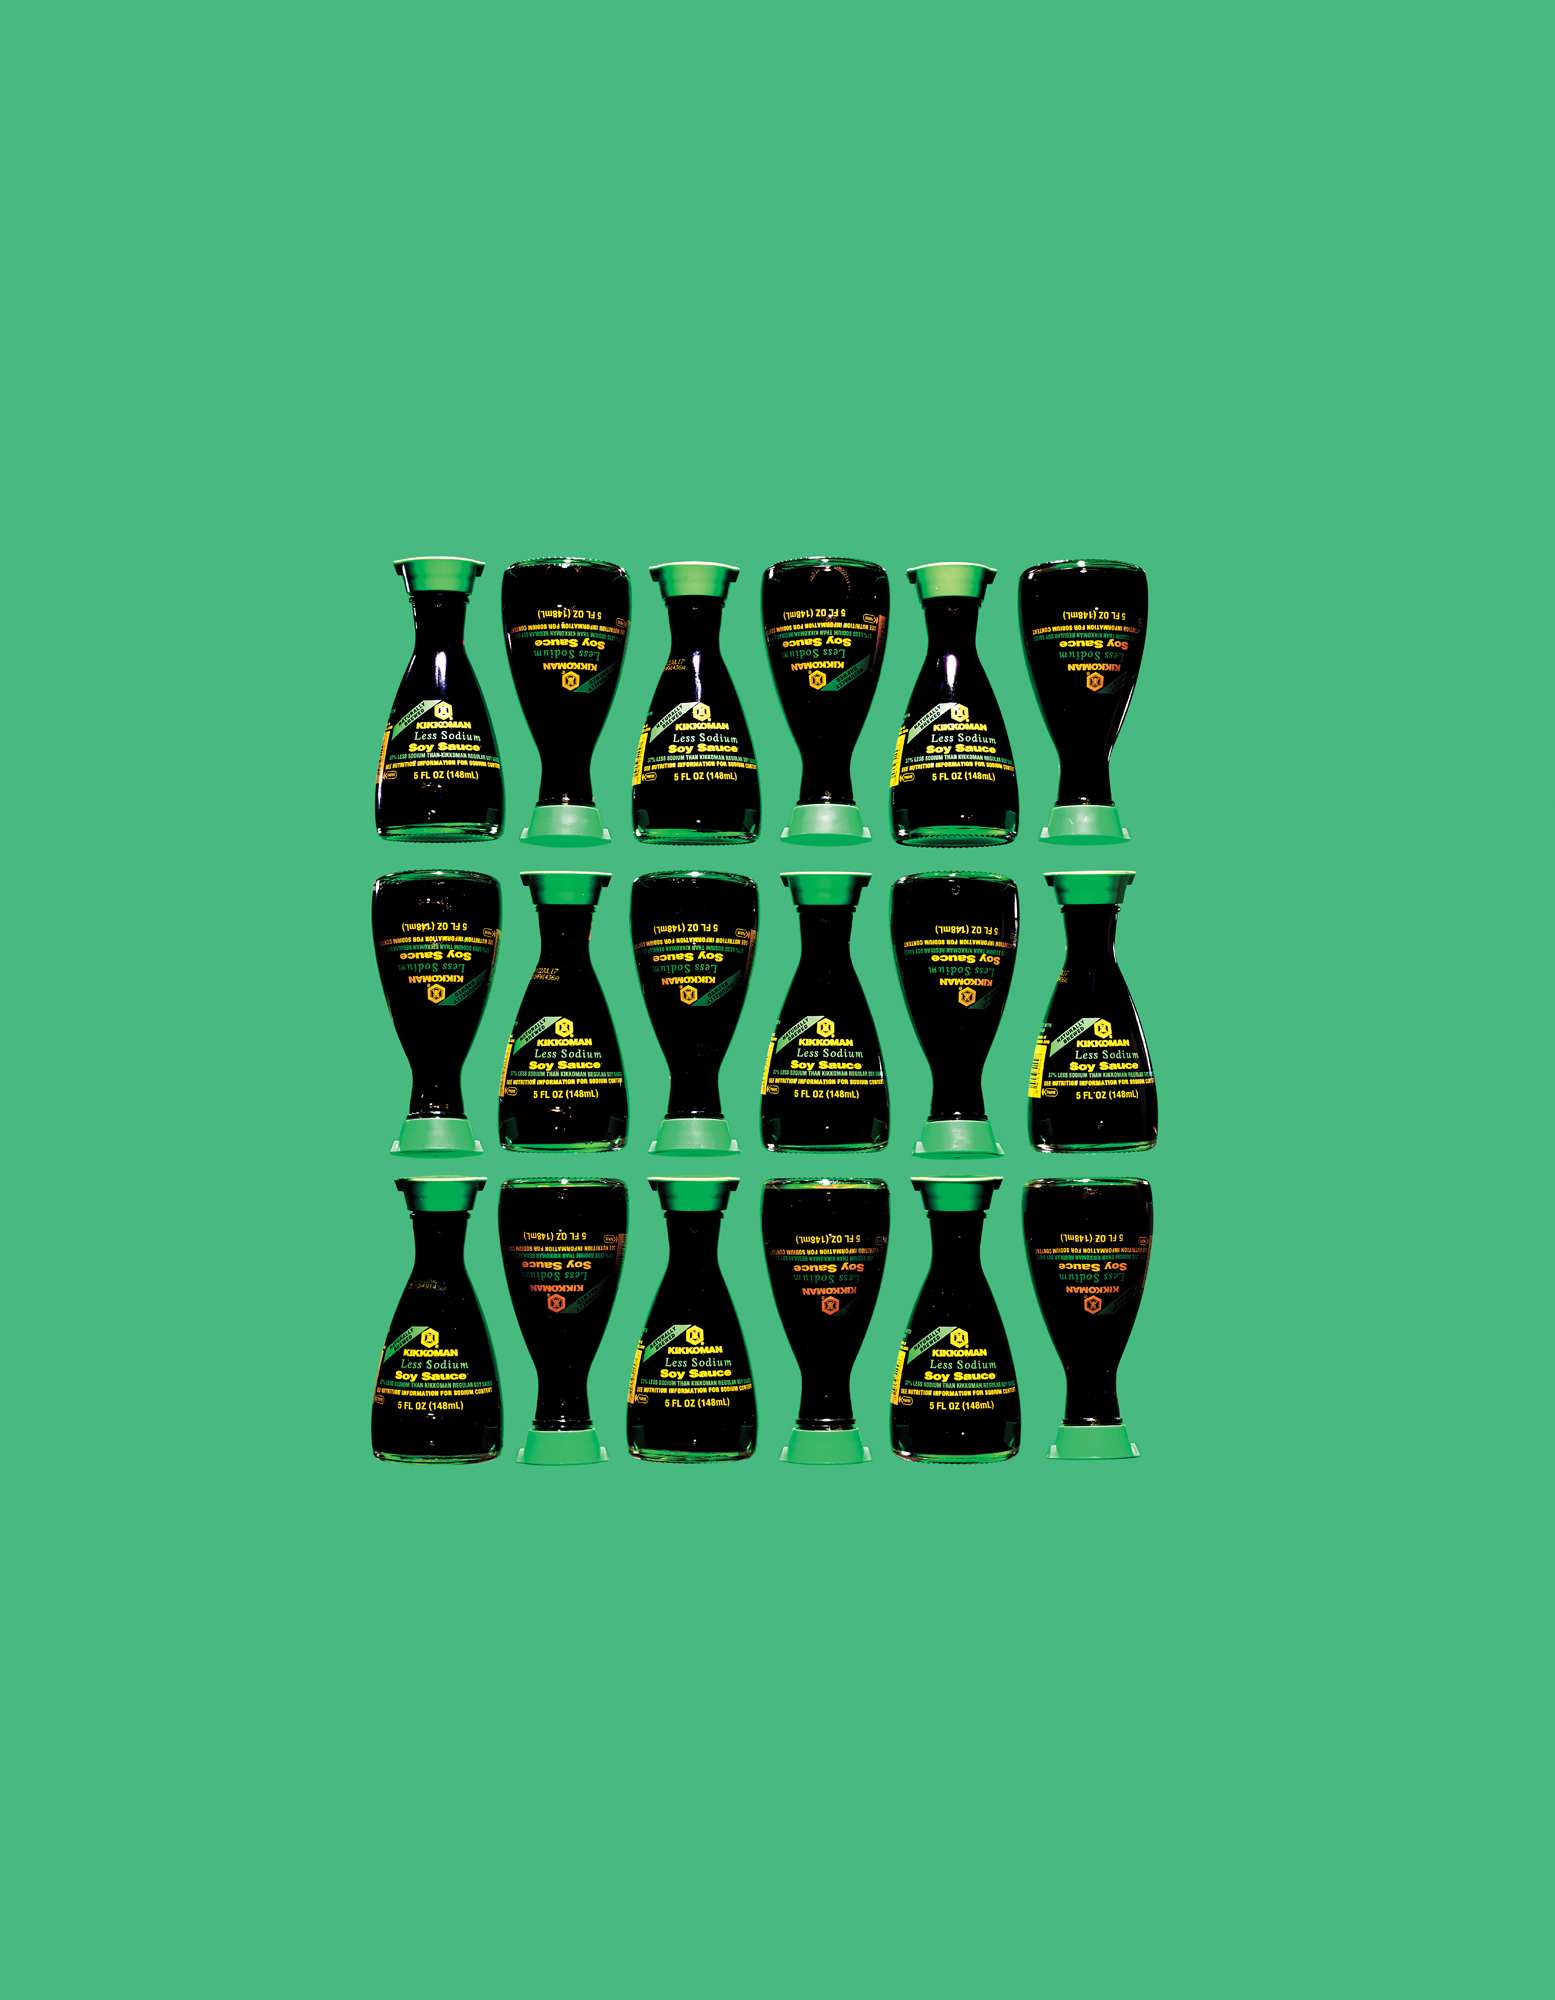 Soy sauce bottles lined up on green background